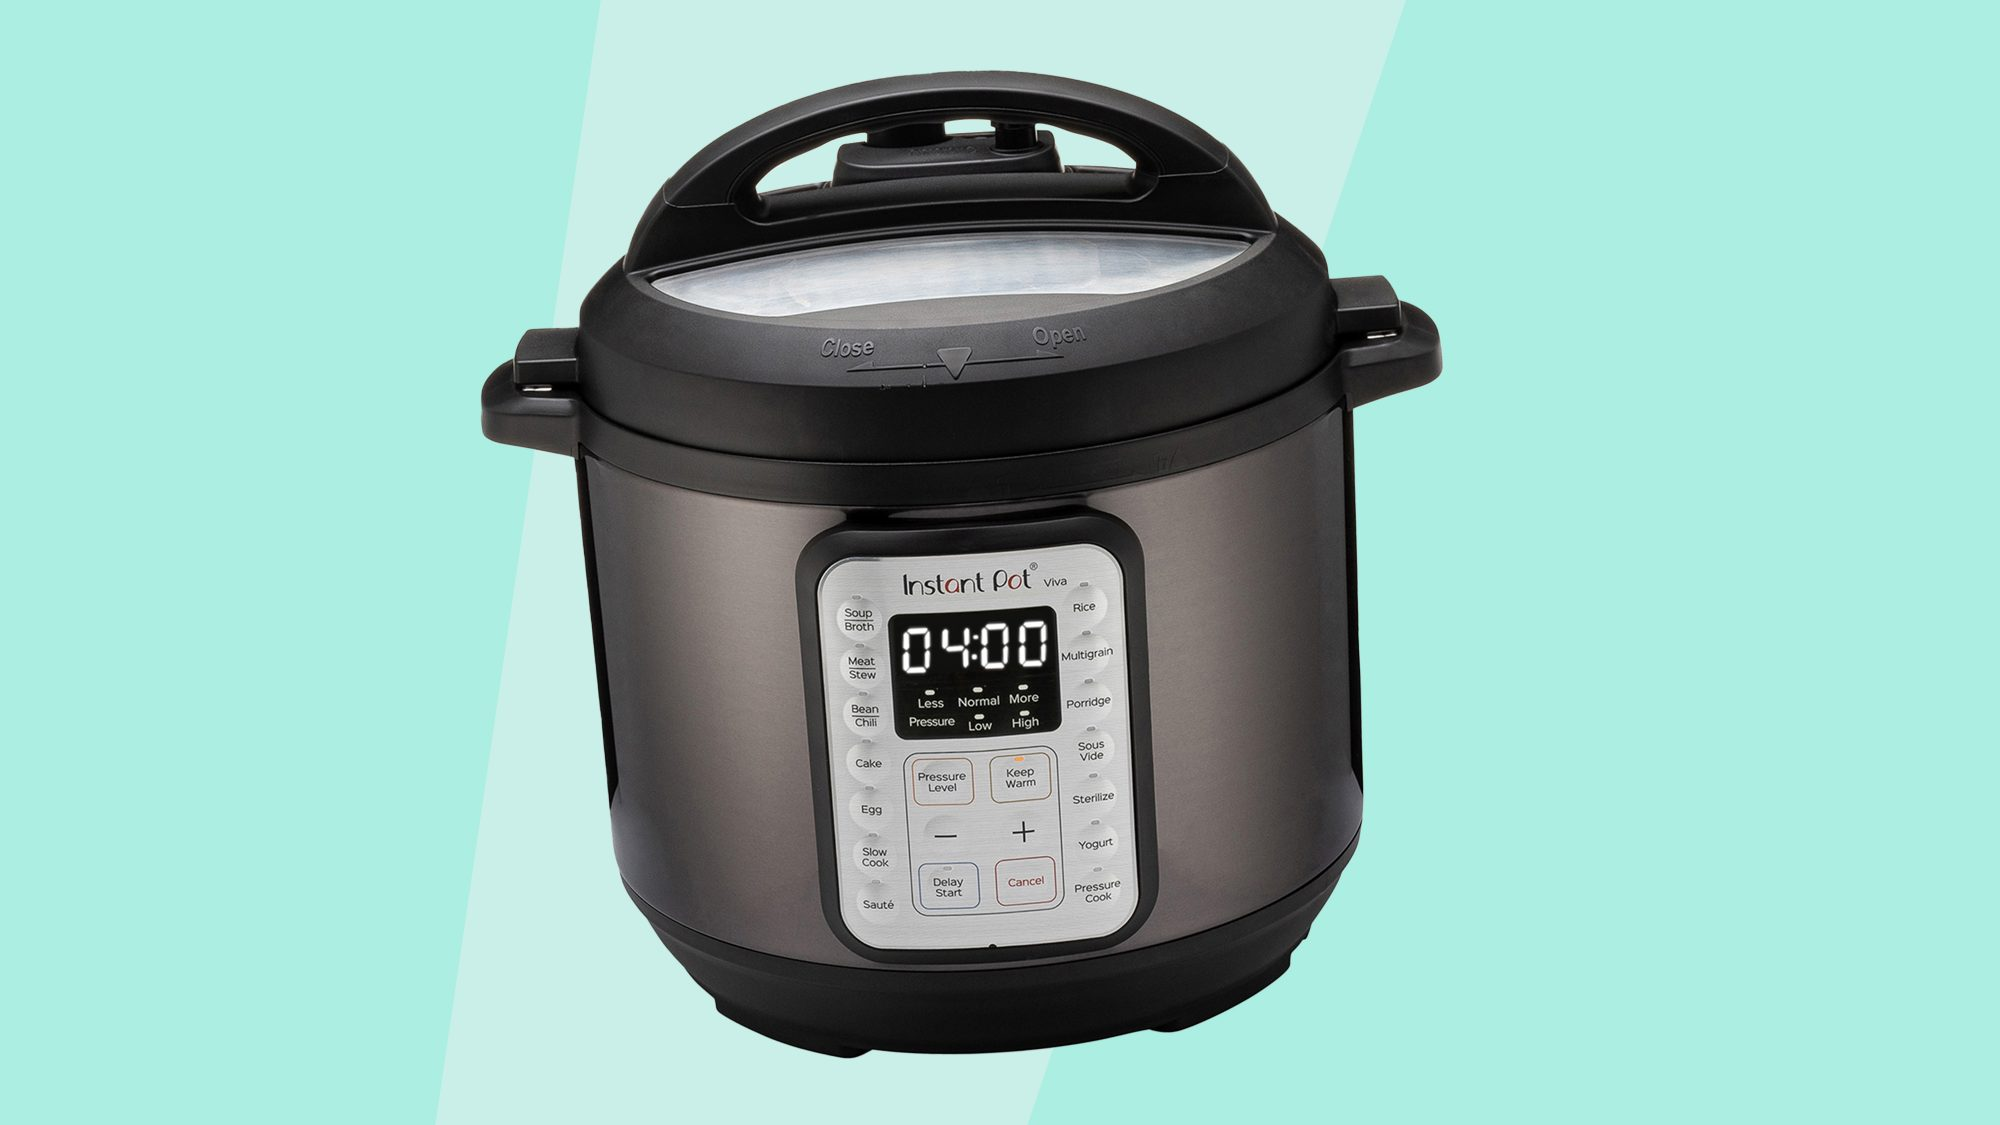 Instant Pot VIVA Black Stainless 6-Quart 9-in-1 Multi-Use Programmable Pressure Cooker, Slow Cooker, Rice Cooker, Yogurt Maker, Cake Maker, Egg Cooker, Sauté, with Sous Vide and Sterilizer Instant Pot VIVA Black Stainless 6-Quart 9-in-1 Multi-Use Programmable Pressure Cooker, Slow Cooker, Rice Cooker, Yogurt Maker, Cake Maker, Egg Cooker, Sauté, with Sous Vide and Sterilizer Instant Pot VIVA Black Stainless 6-Quart 9-in-1 Multi-Use Programmable Pressure Cooker, Slow Cooker, Rice Cooker, Yogurt Maker, Cake Maker, Egg Cooker, Sauté, with Sous Vide and Sterilizer Instant Pot VIVA Black Stainless 6-Quart 9-in-1 Multi-Use Programmable Pressure Cooker, Slow Cooker, Rice Cooker, Yogurt Maker, Cake Maker, Egg Cooker, Sauté, with Sous Vide and Sterilizer Instant Pot VIVA Black Stainless 6-Quart 9-in-1 Multi-Use Programmable Pressure Cooker, Slow Cooker, Rice Cooker, Yogurt Maker, Cake Maker, Egg Cooker, Sauté, with Sous Vide and Sterilizer  Report incorrect product information Instant Pot Instant Pot VIVA Black Stainless 6-Quart 9-in-1 Multi-Use Programmable Pressure Cooker